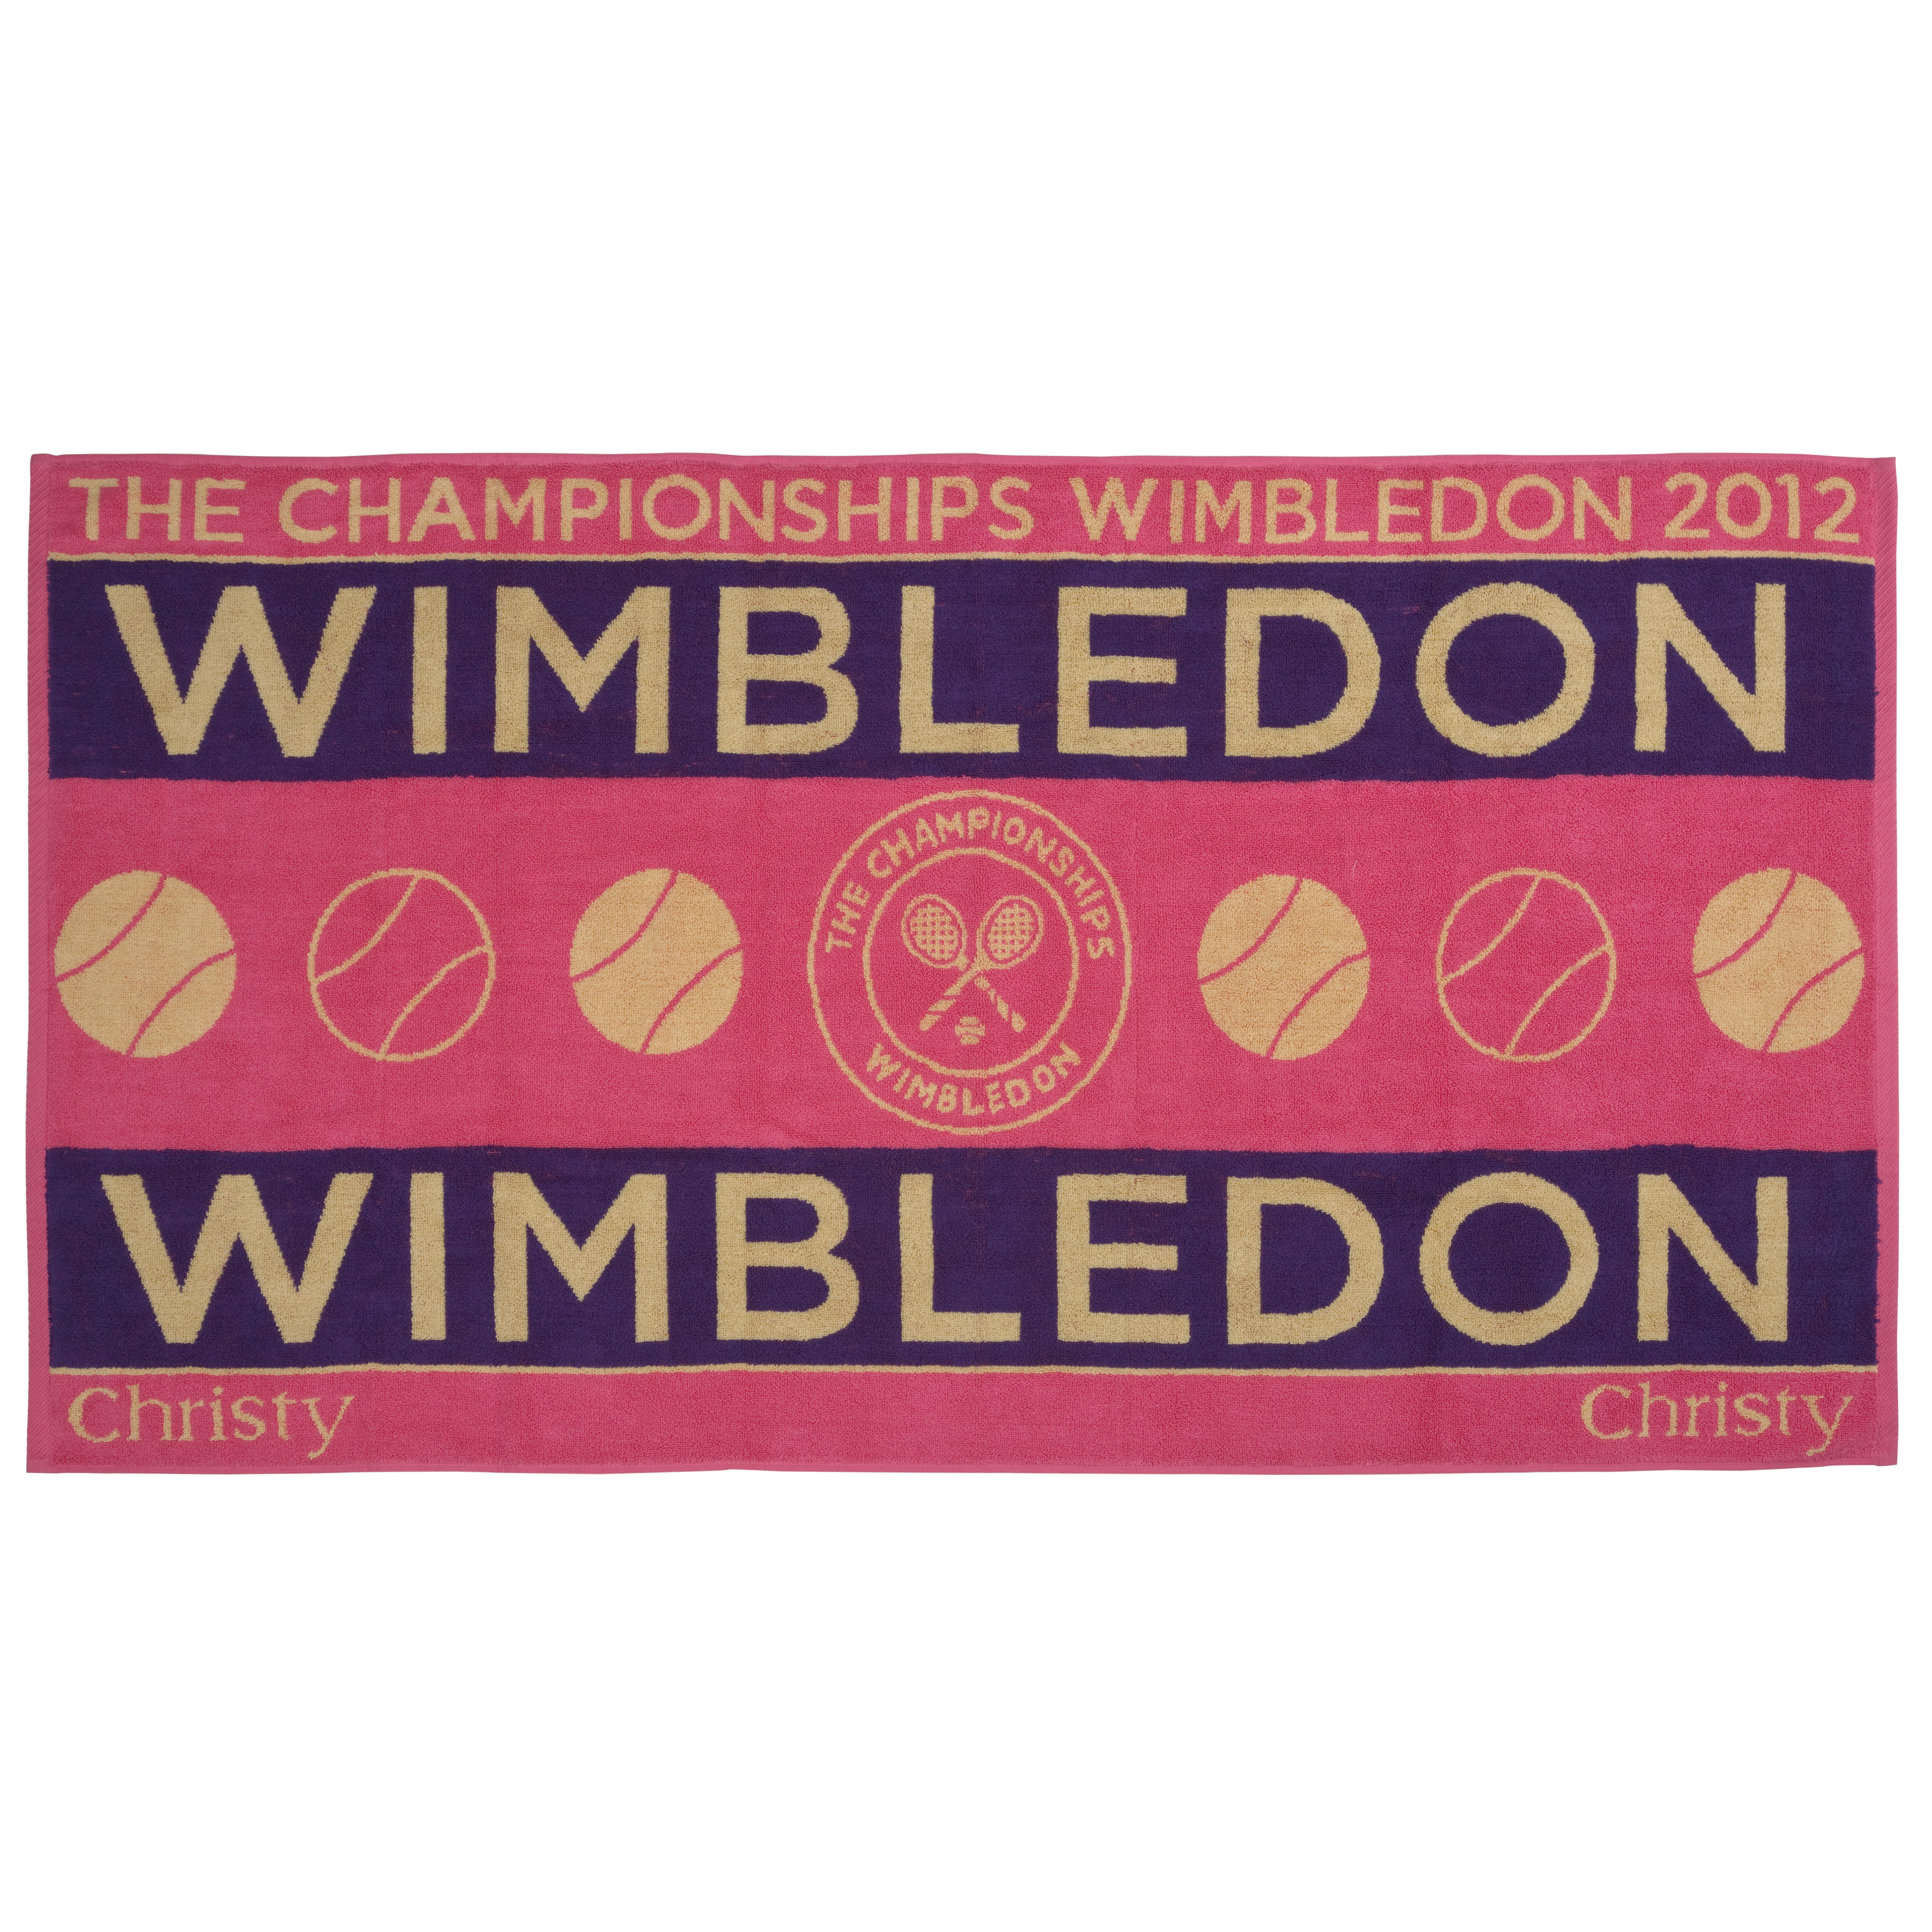 Wimbledon Ladies Championships Towel 2012 - Raspberry/Purple